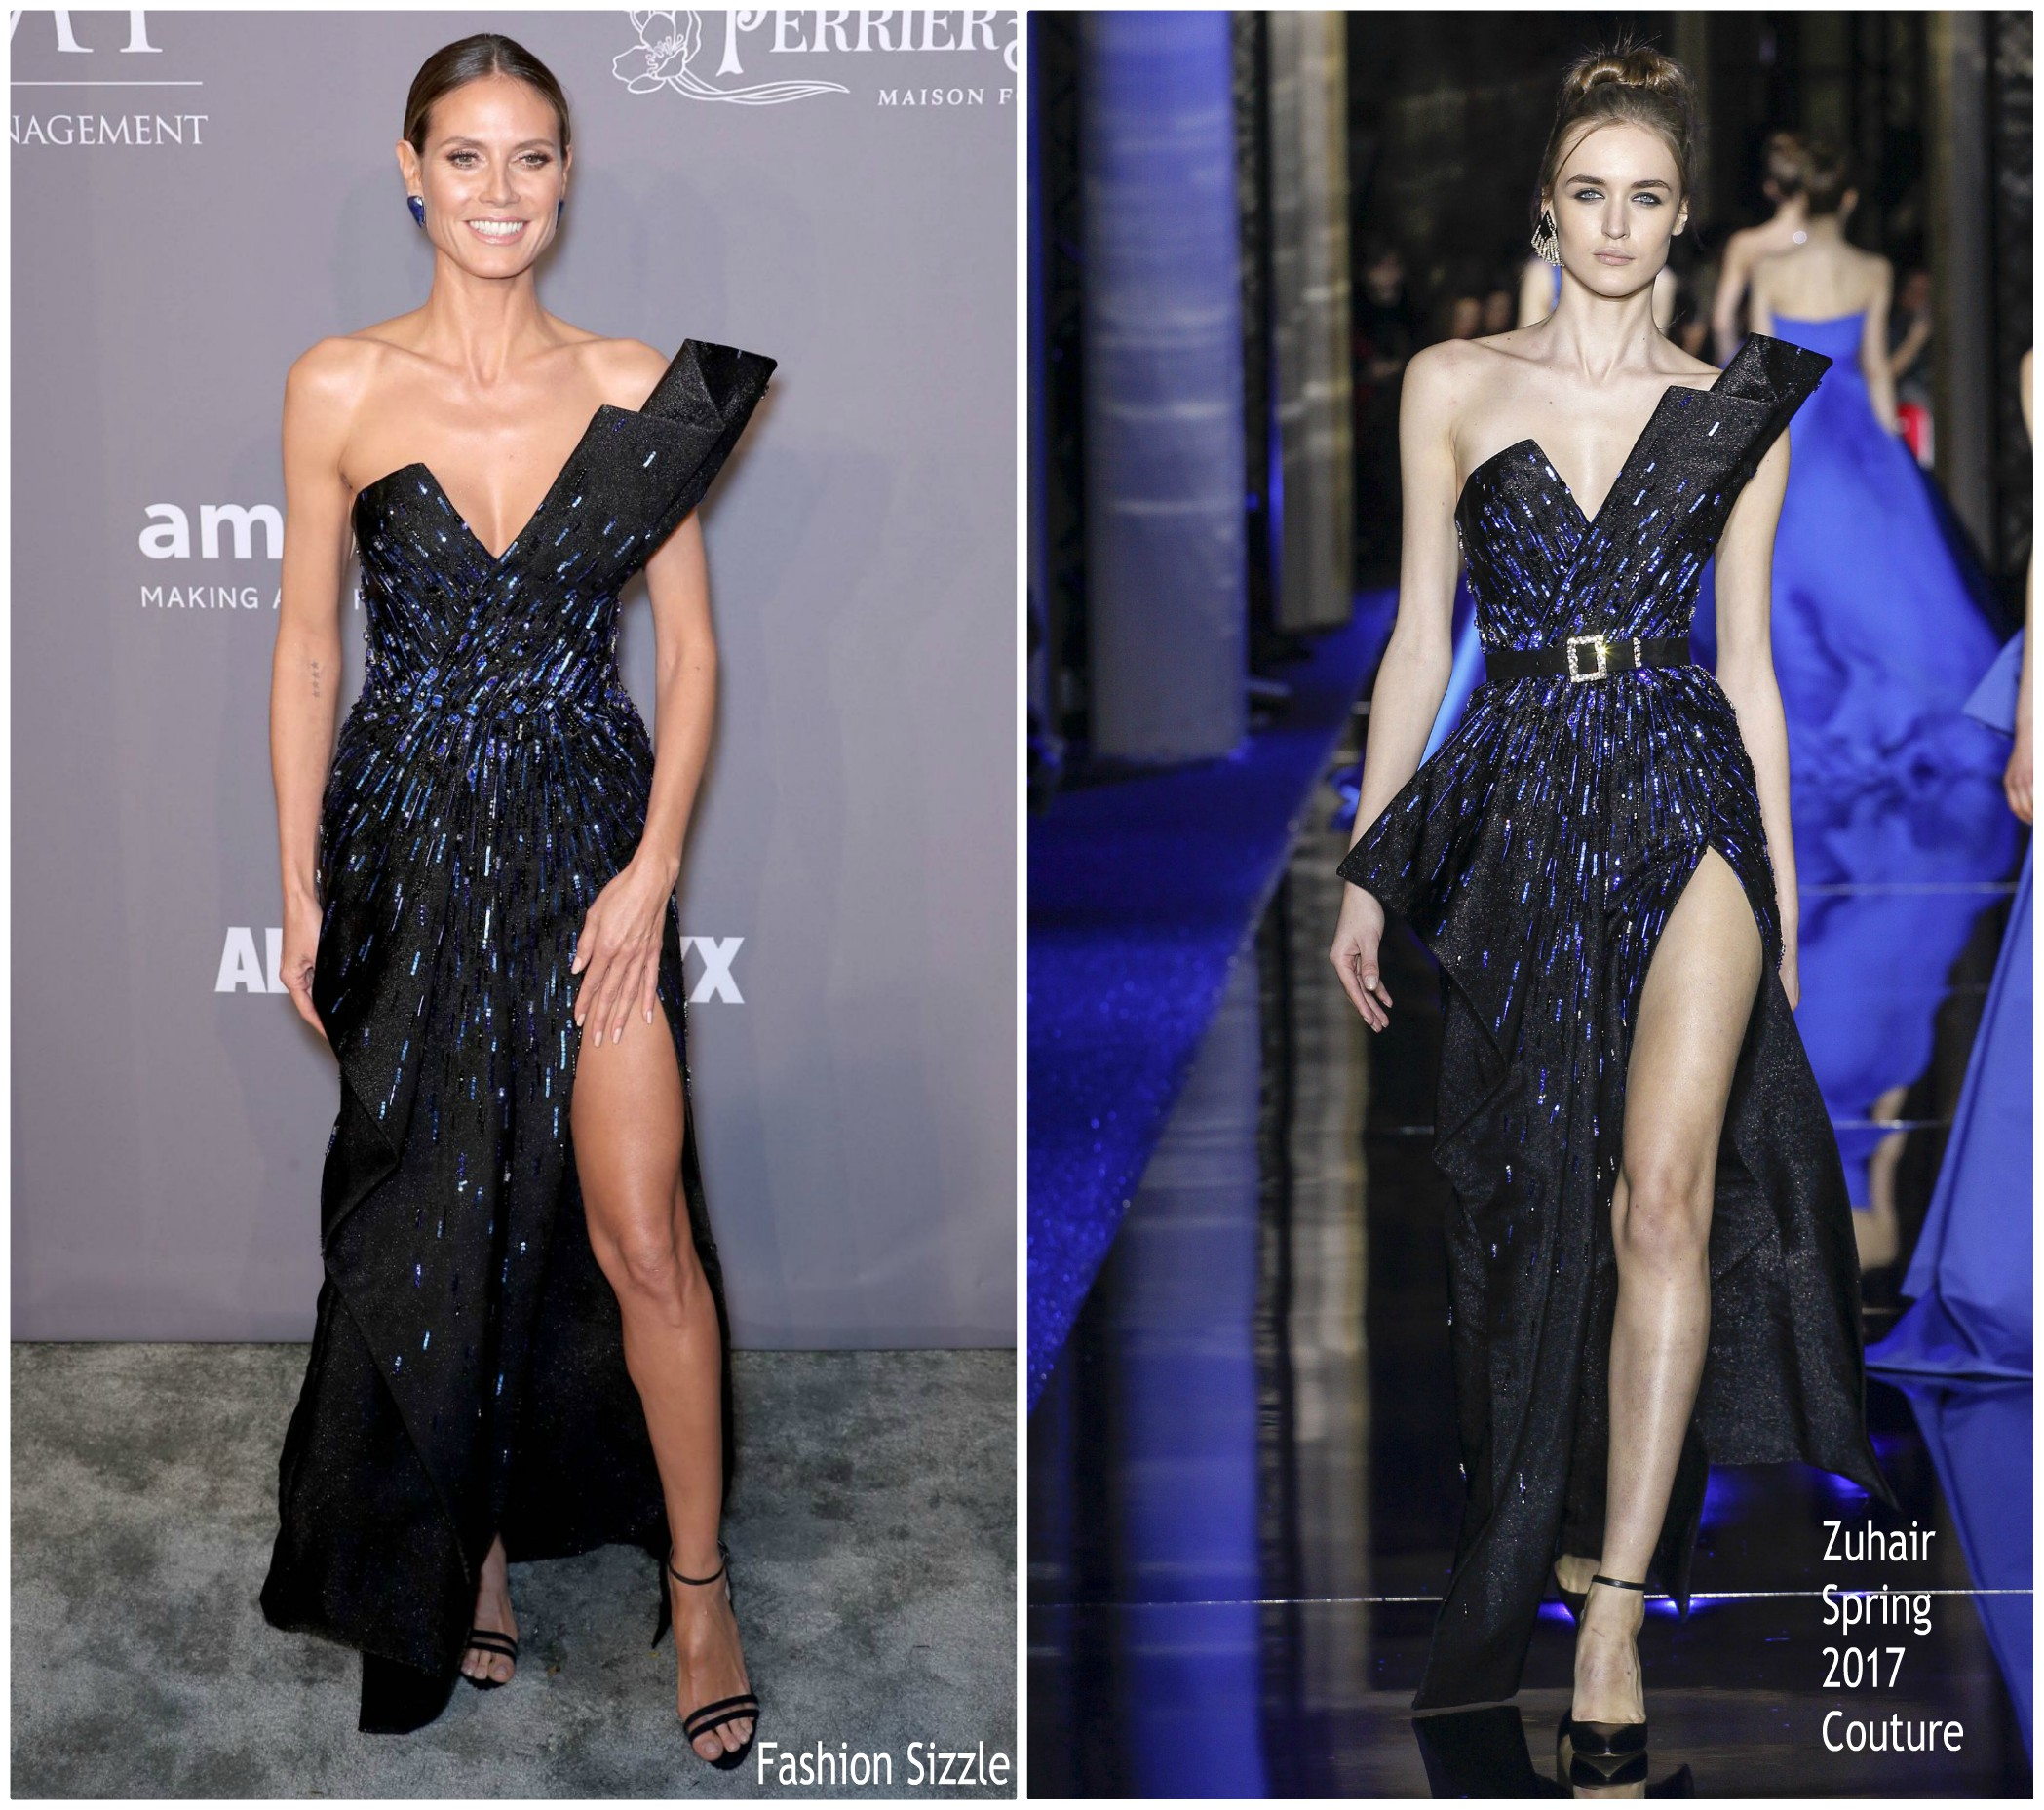 heidi-klum-in-zuhair-murad-couture-2018-amfar-gala-new-york